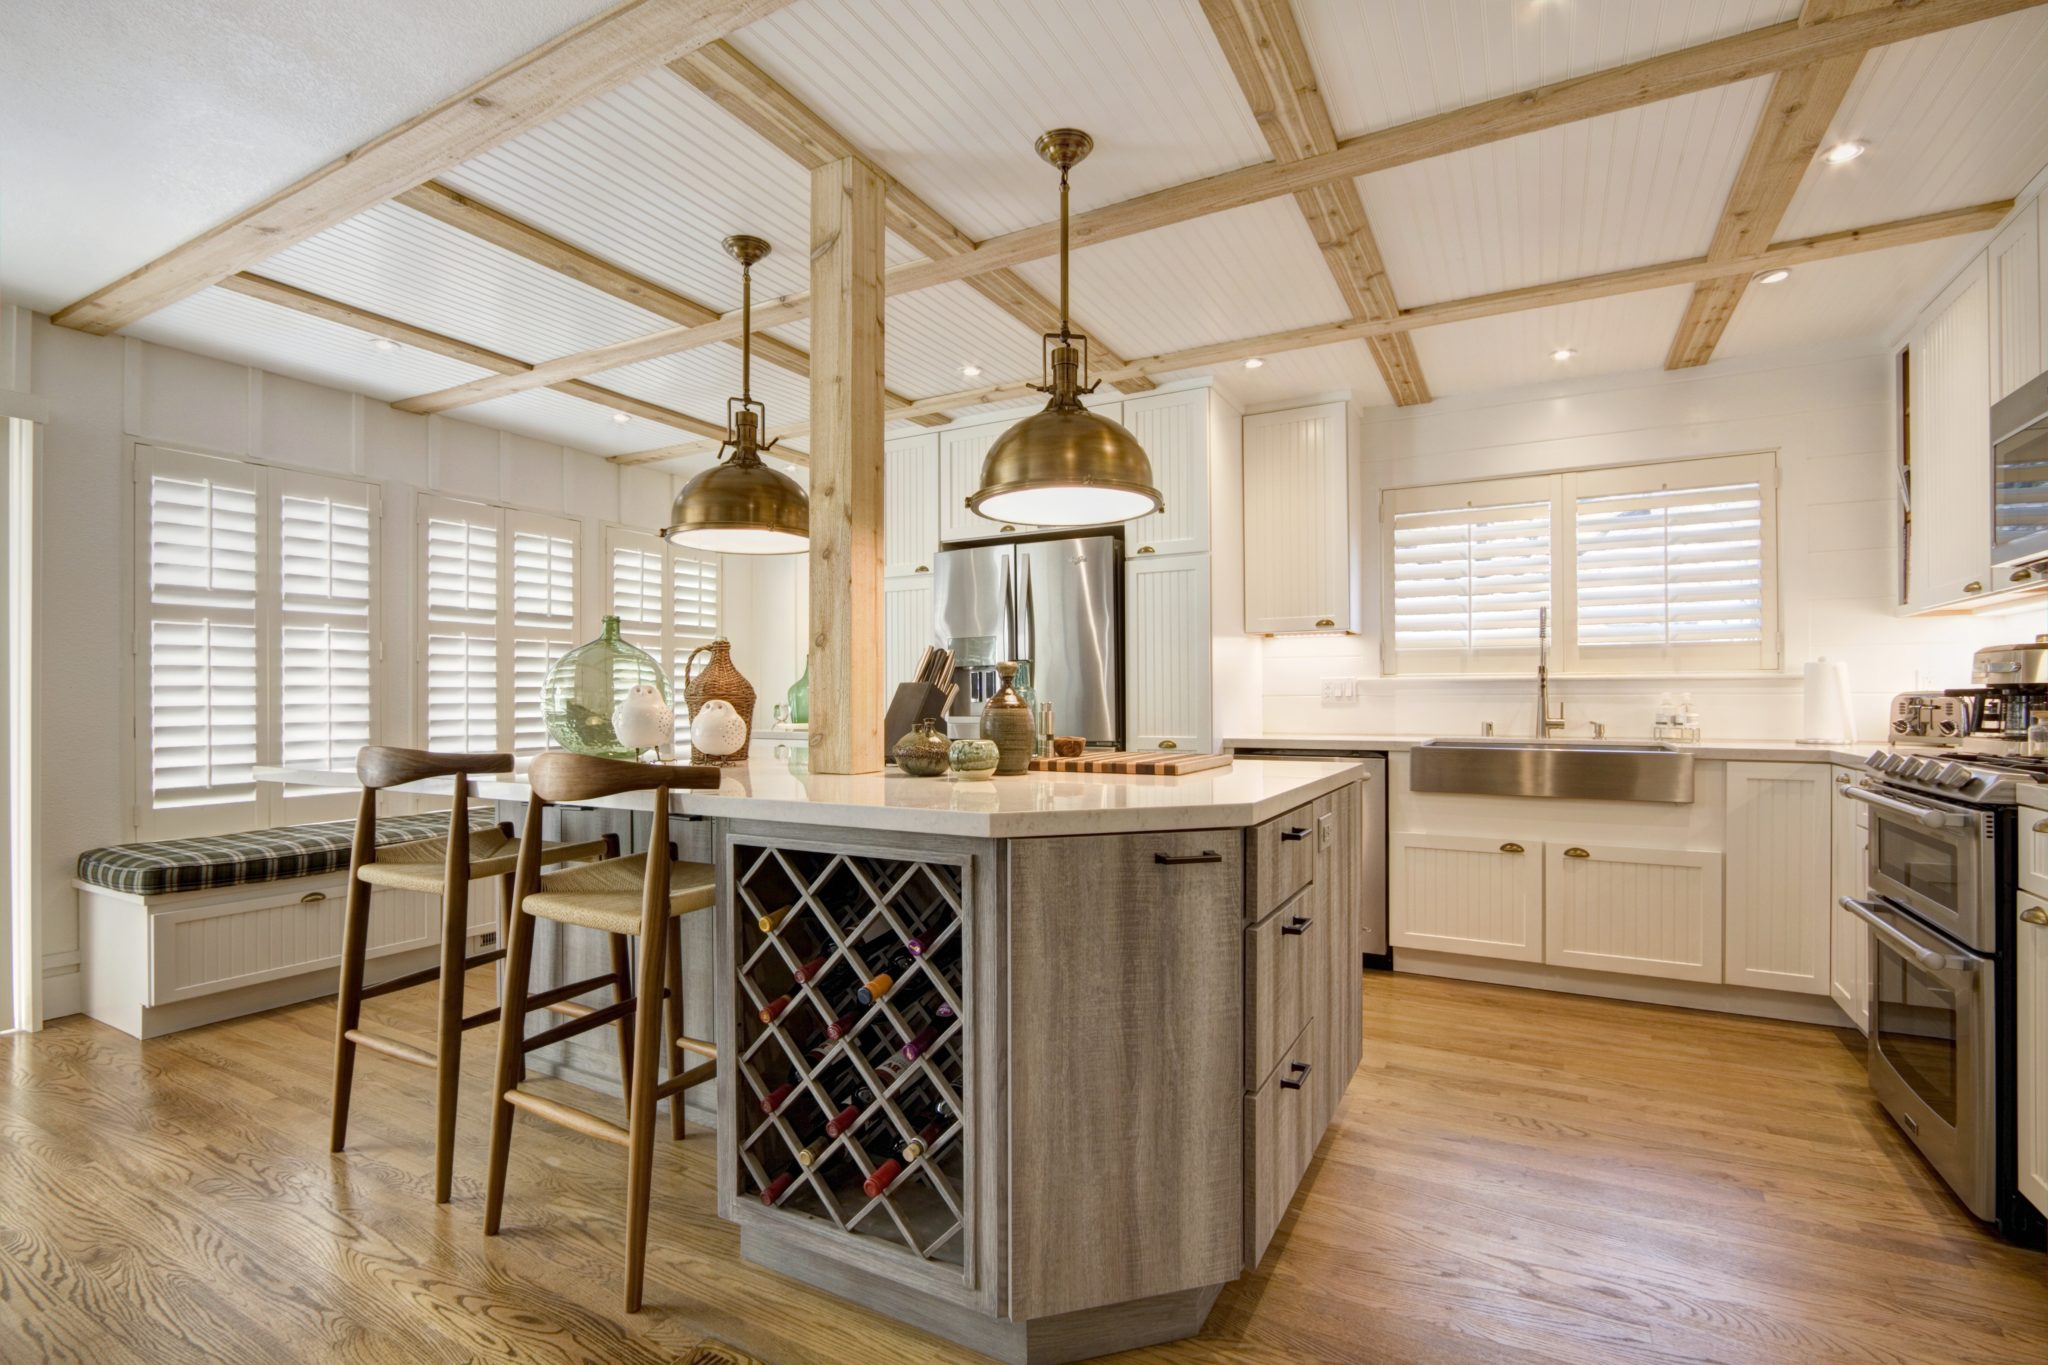 Wood accents add character to a kitchen by Scott Corridan Design